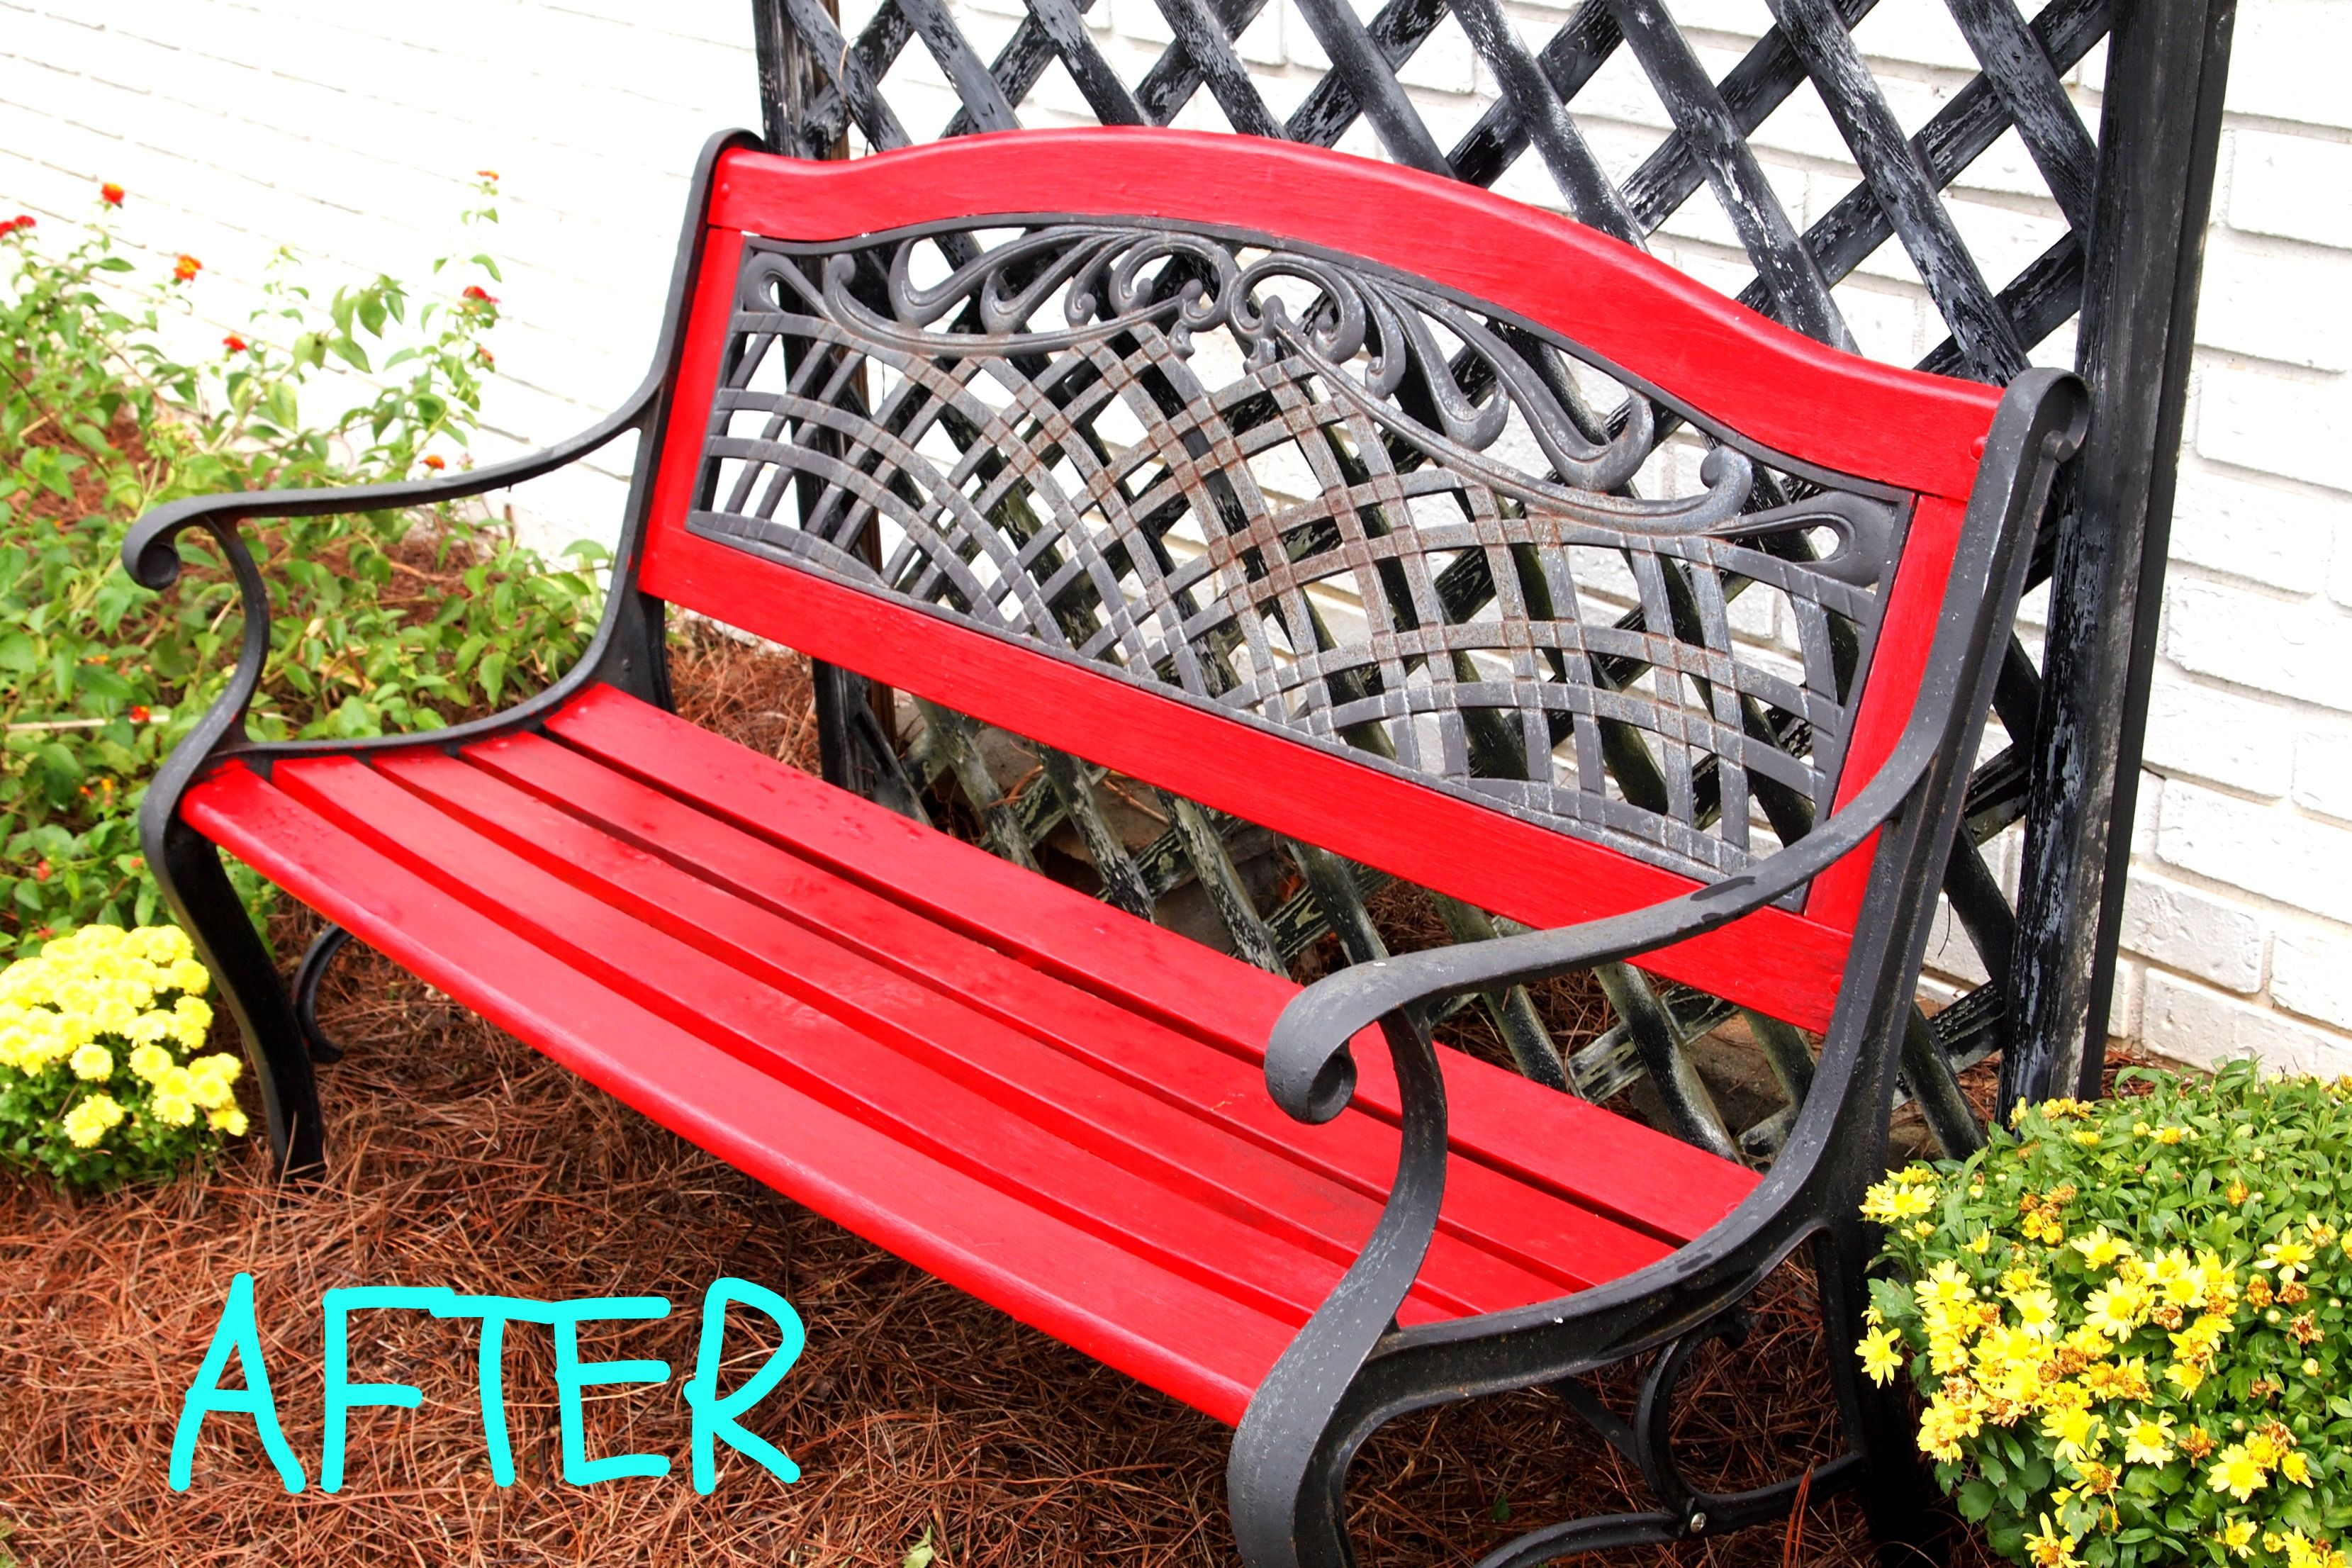 High Quality Google Image Result For  Http://acultivatednest.com/wp Content/uploads/2012/09/red Garden Bench